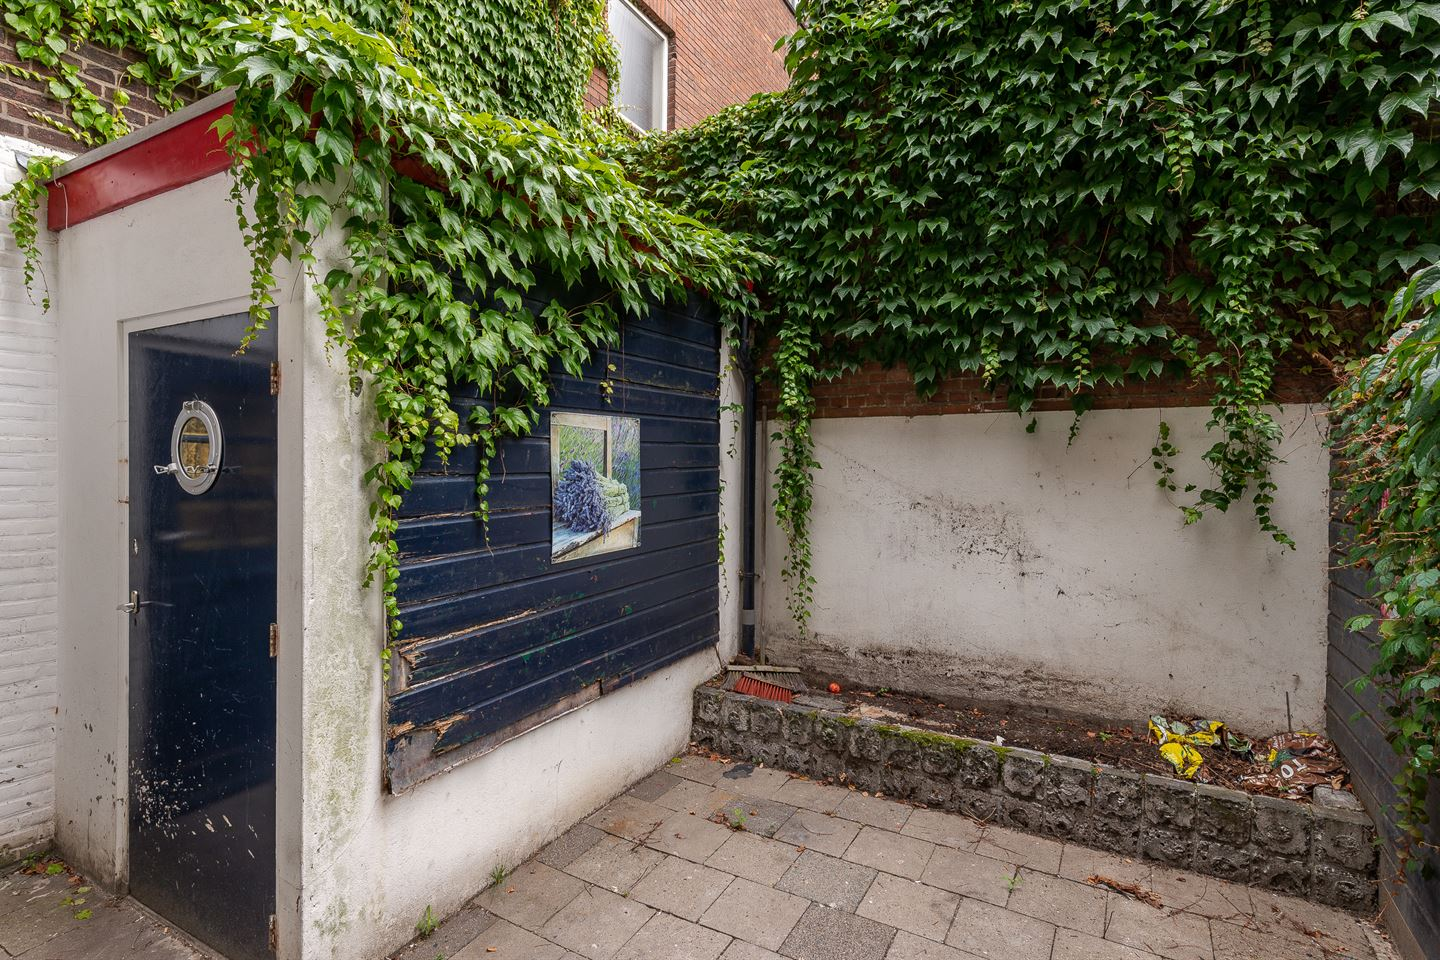 View photo 4 of Groen van Prinstererstraat 188